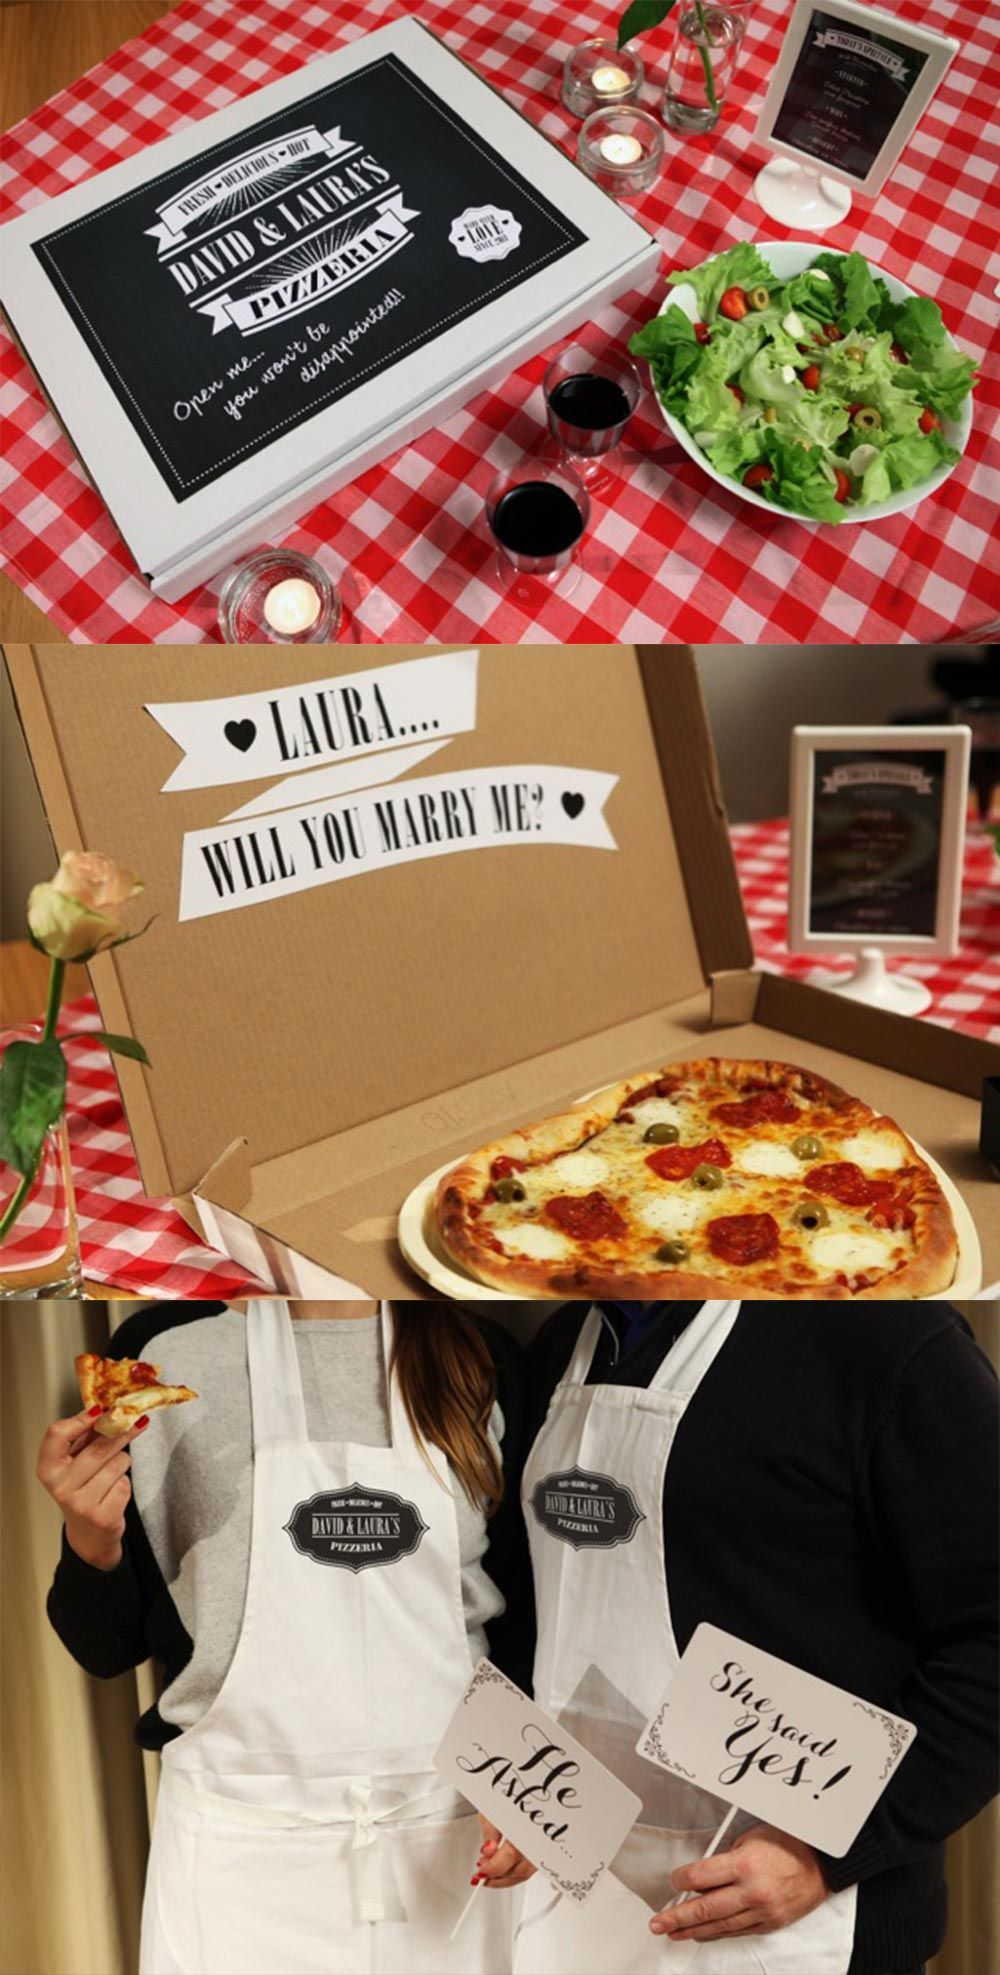 Pizza Box Proposal Idea